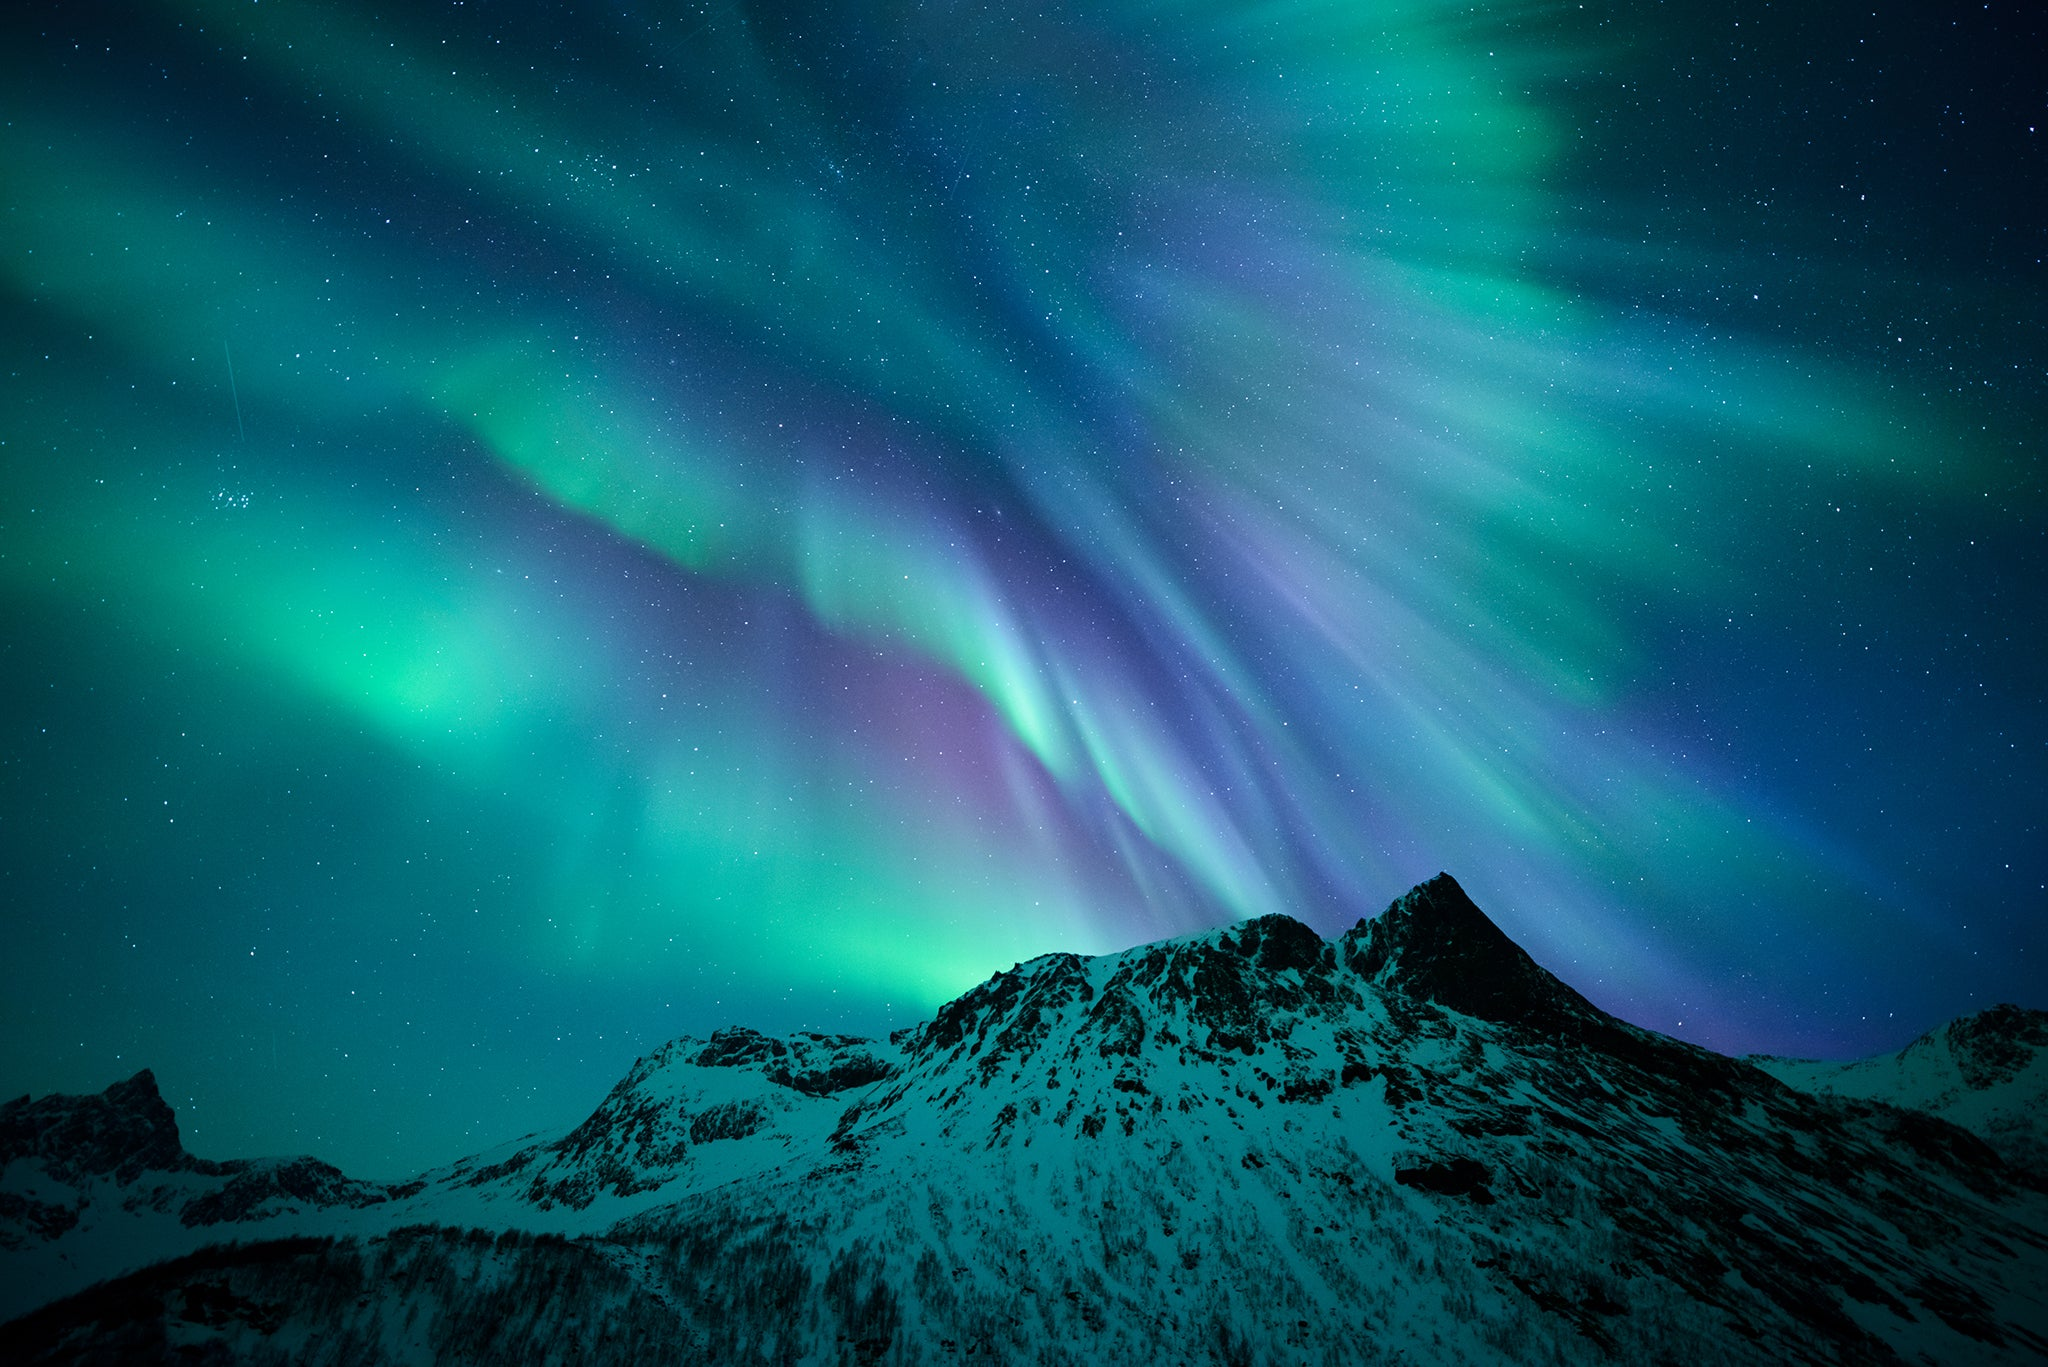 Astronomy Photographer of the Year 2015 shortlist reveals ...